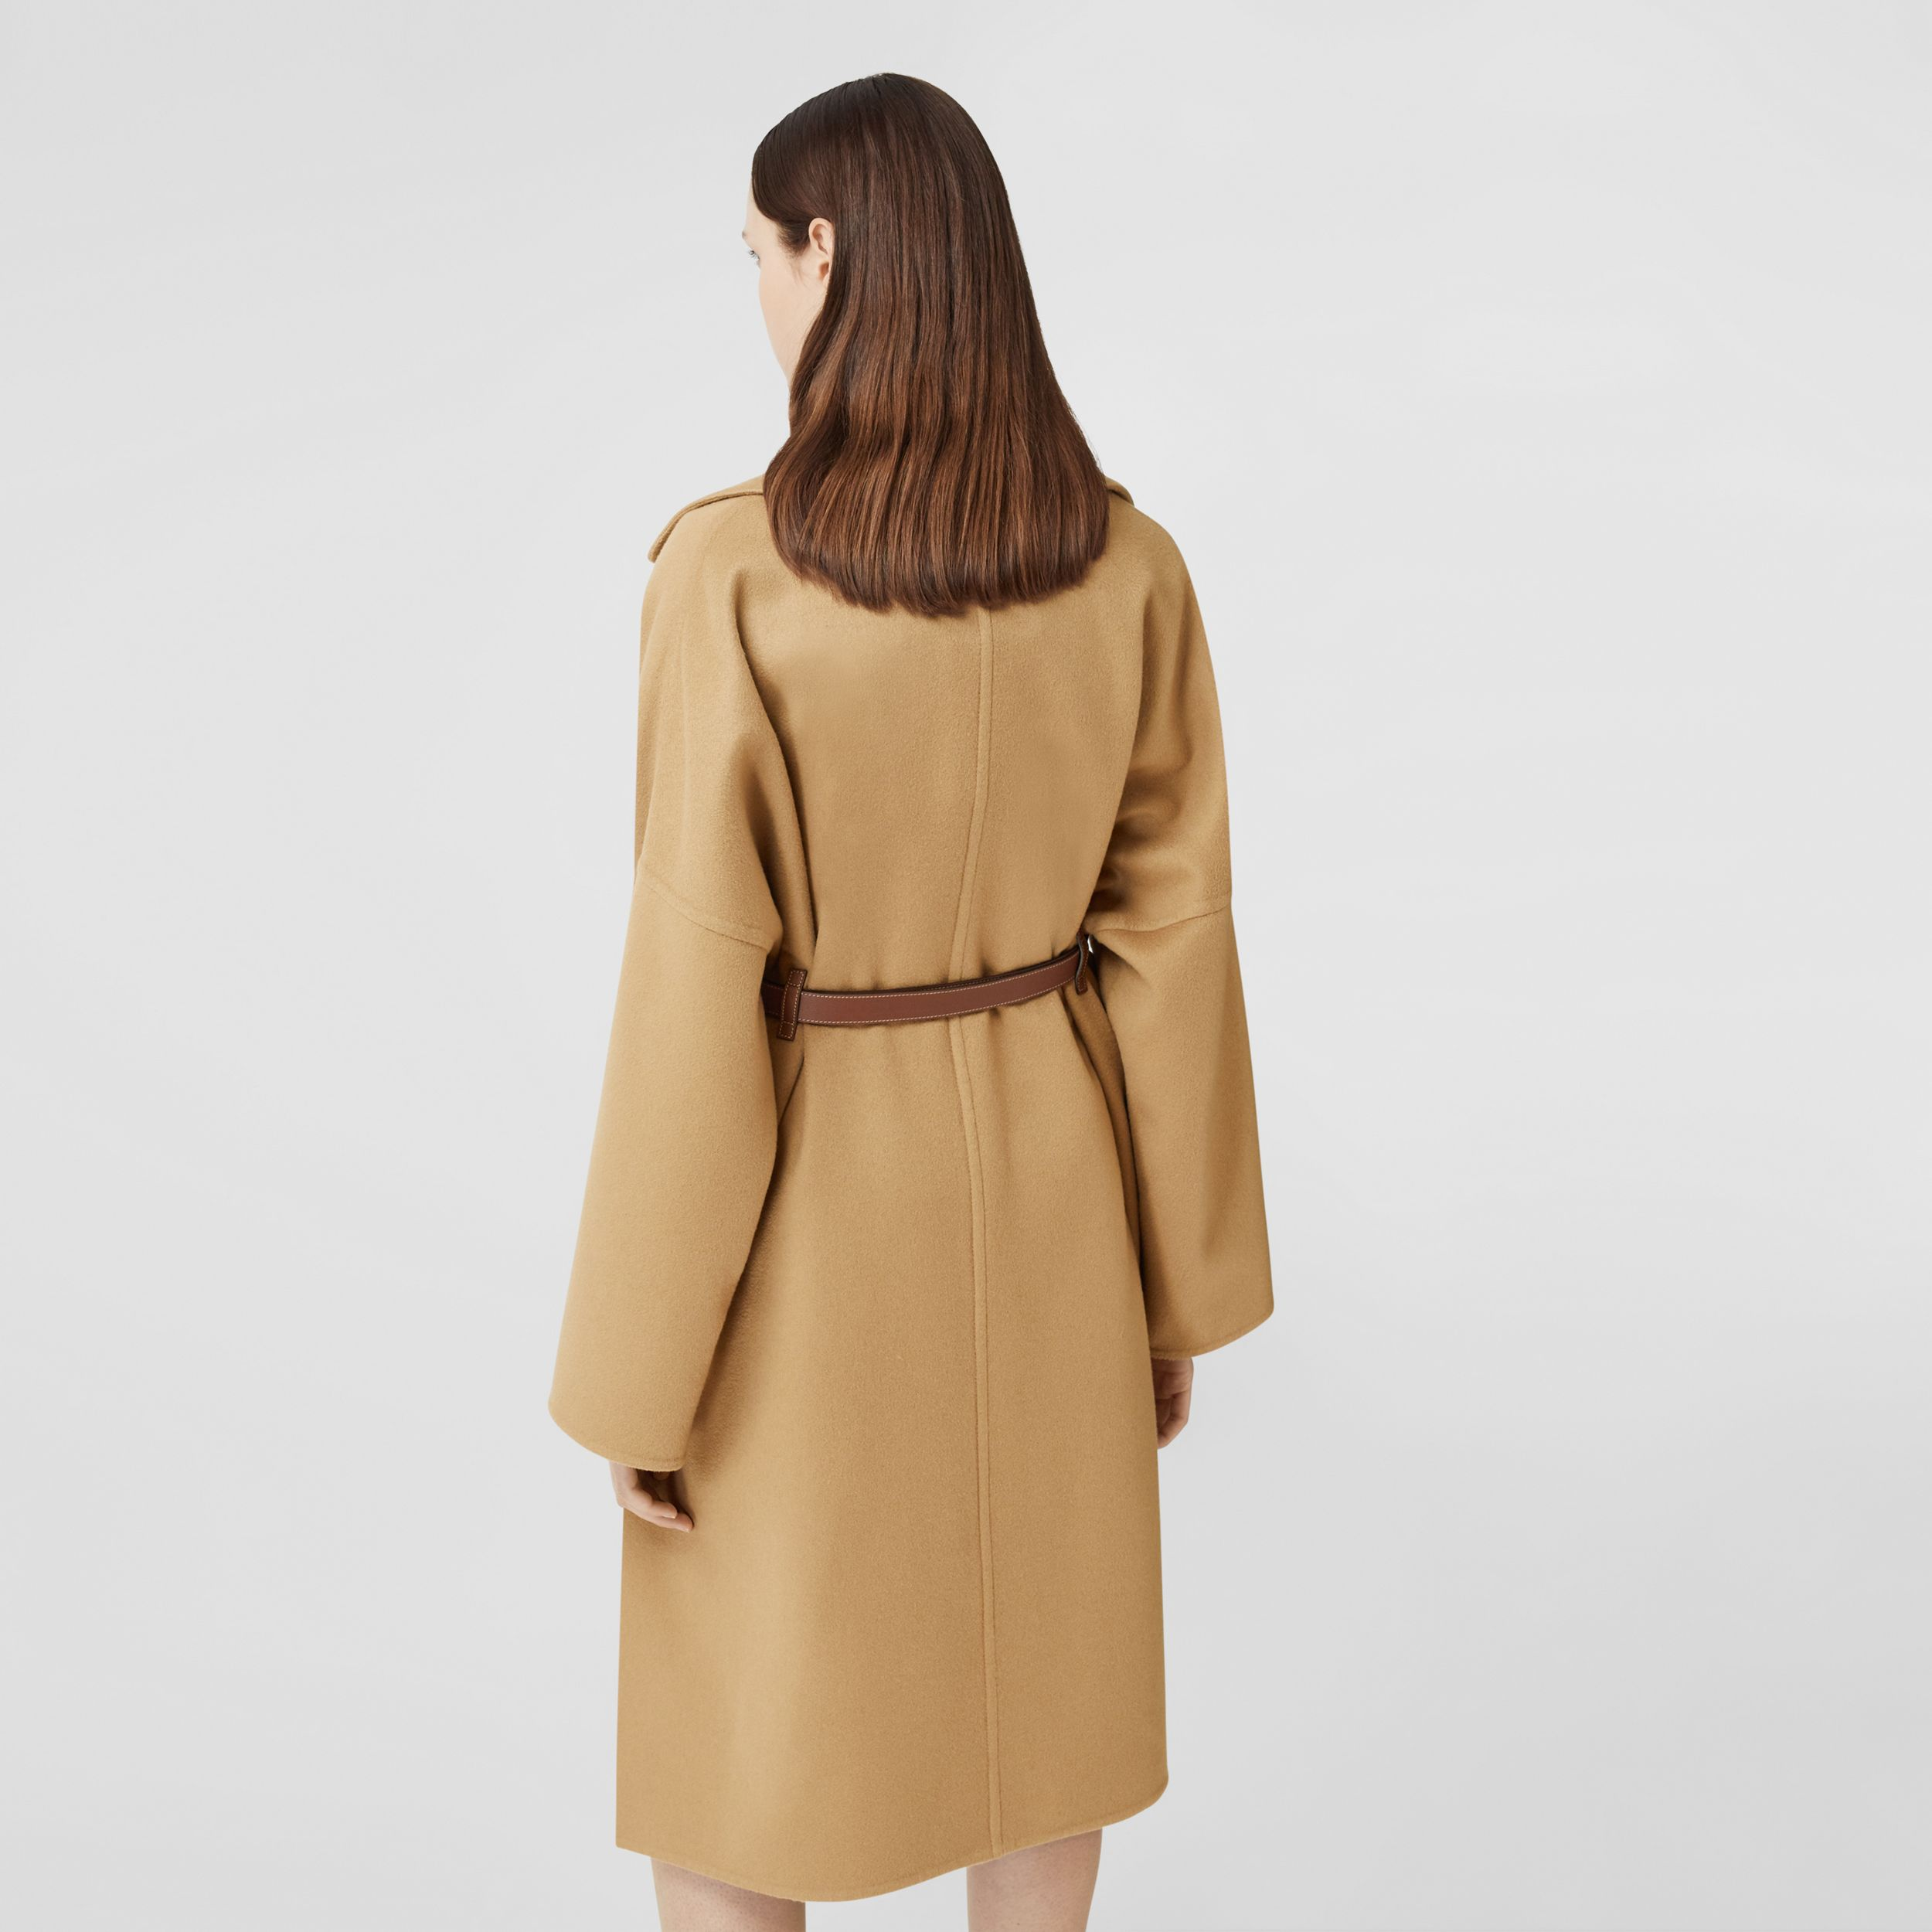 Pocket Detail Double-faced Cashmere Wrap Coat in Camel - Women | Burberry - 3